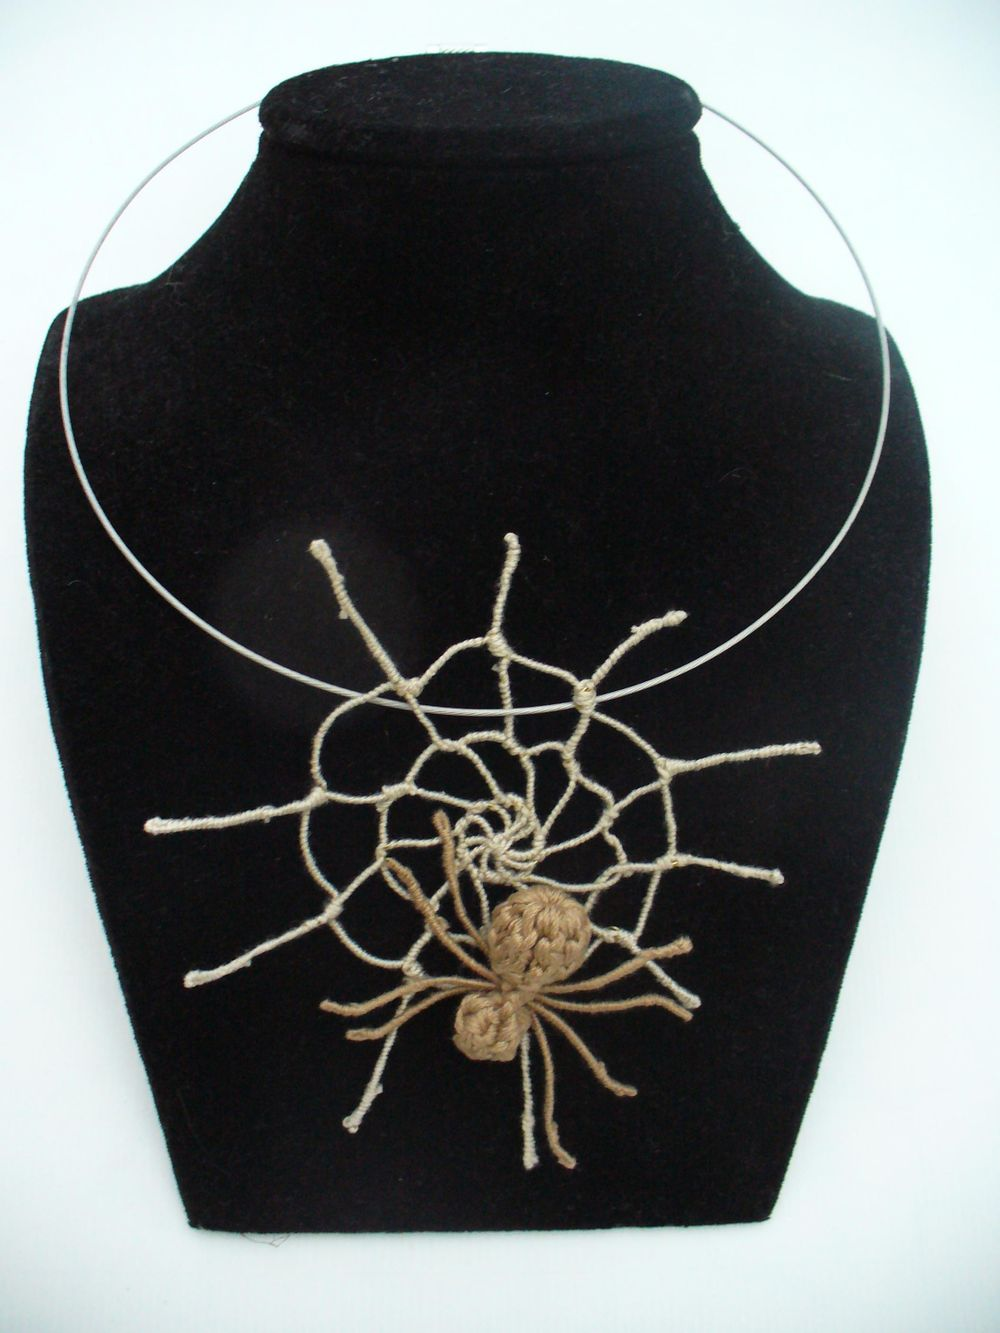 Spider's web jewelry - image 1 - student project